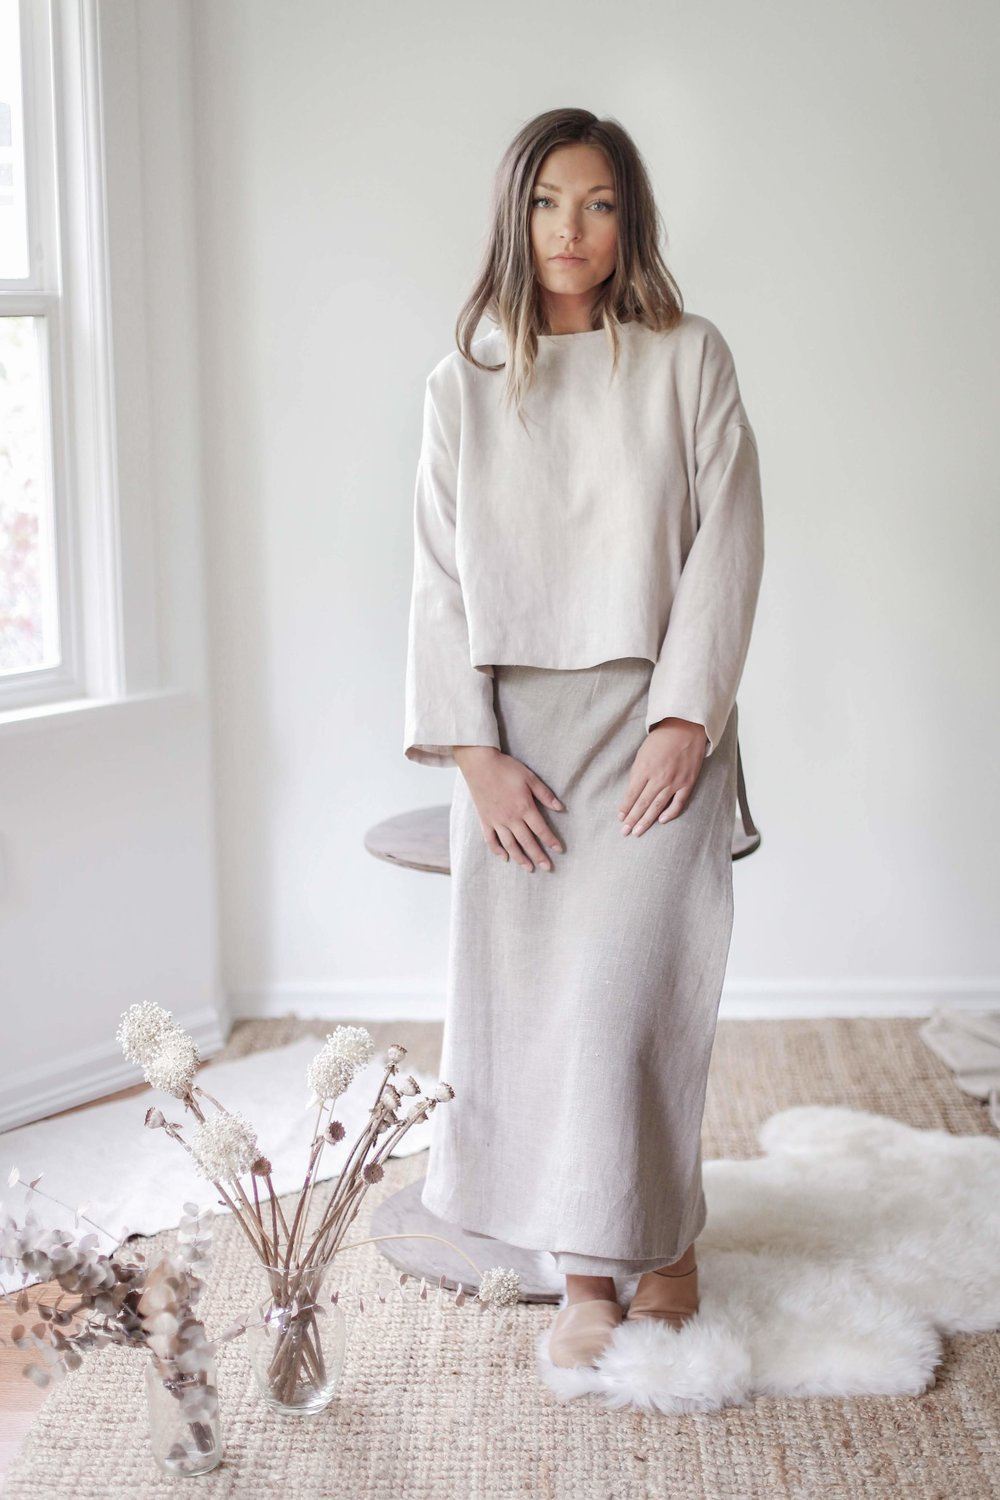 nomi-designs_madison-long-sleeve-top_gleam_natural-linen-top_front-with-wrap-skirt.jpg